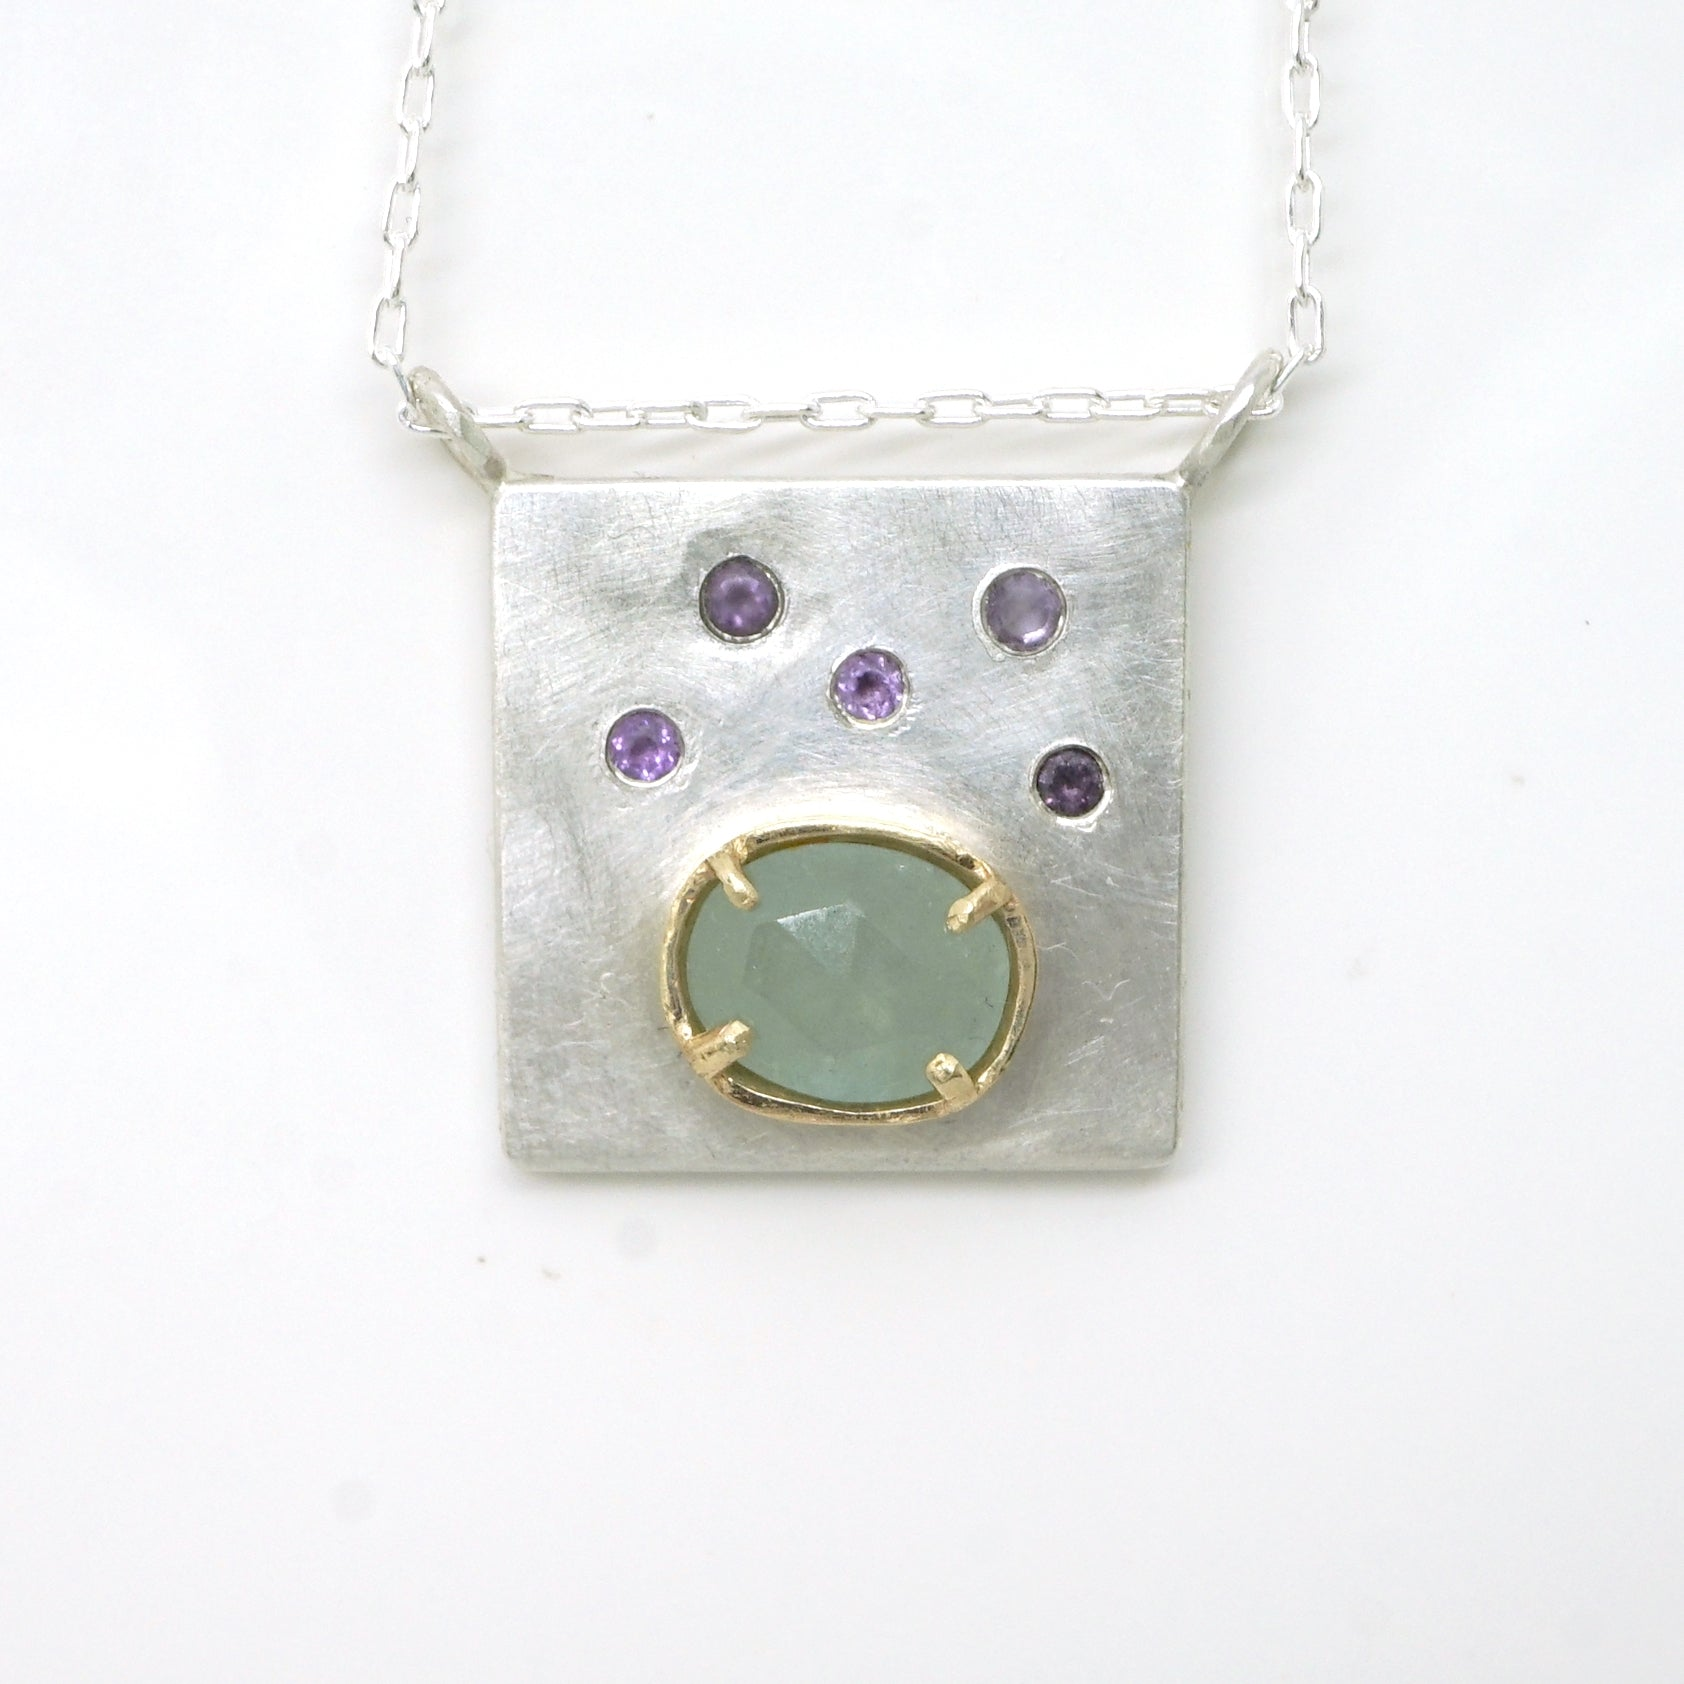 Art pendant necklace with amethyst and aquamarine